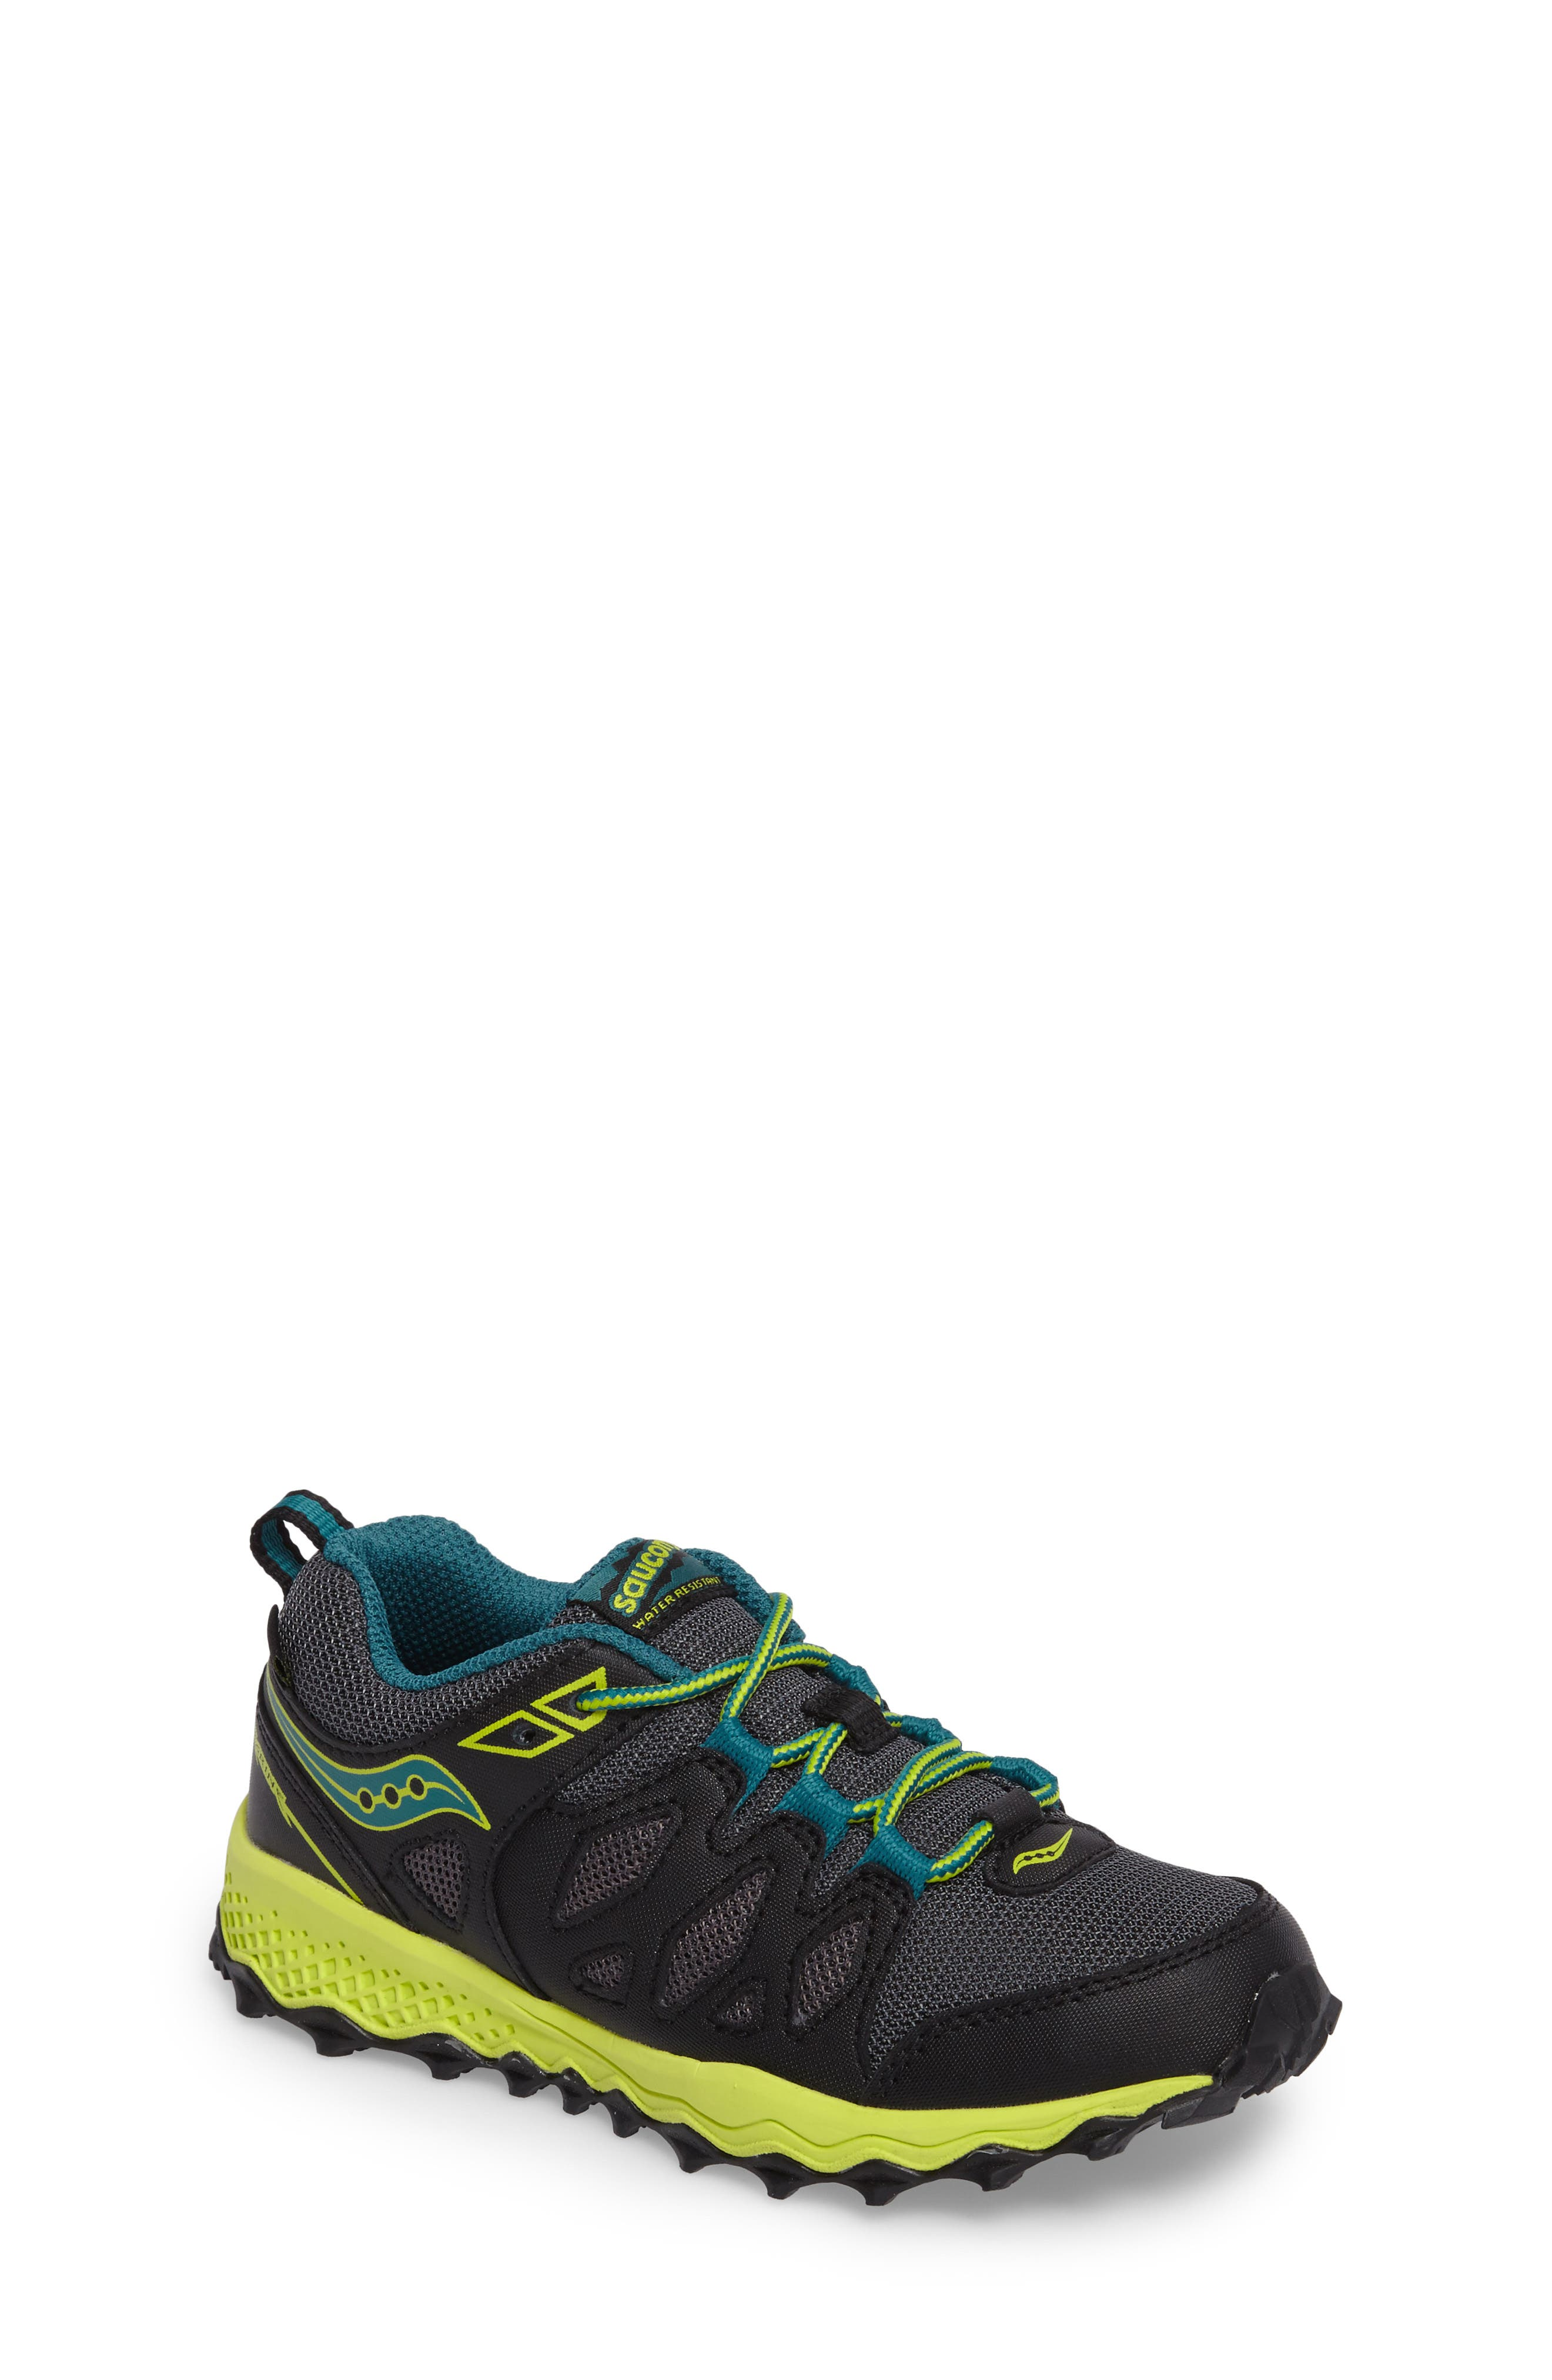 Peregrine Shield Water-Resistant Sneaker,                         Main,                         color, Black/ Lime/ Green